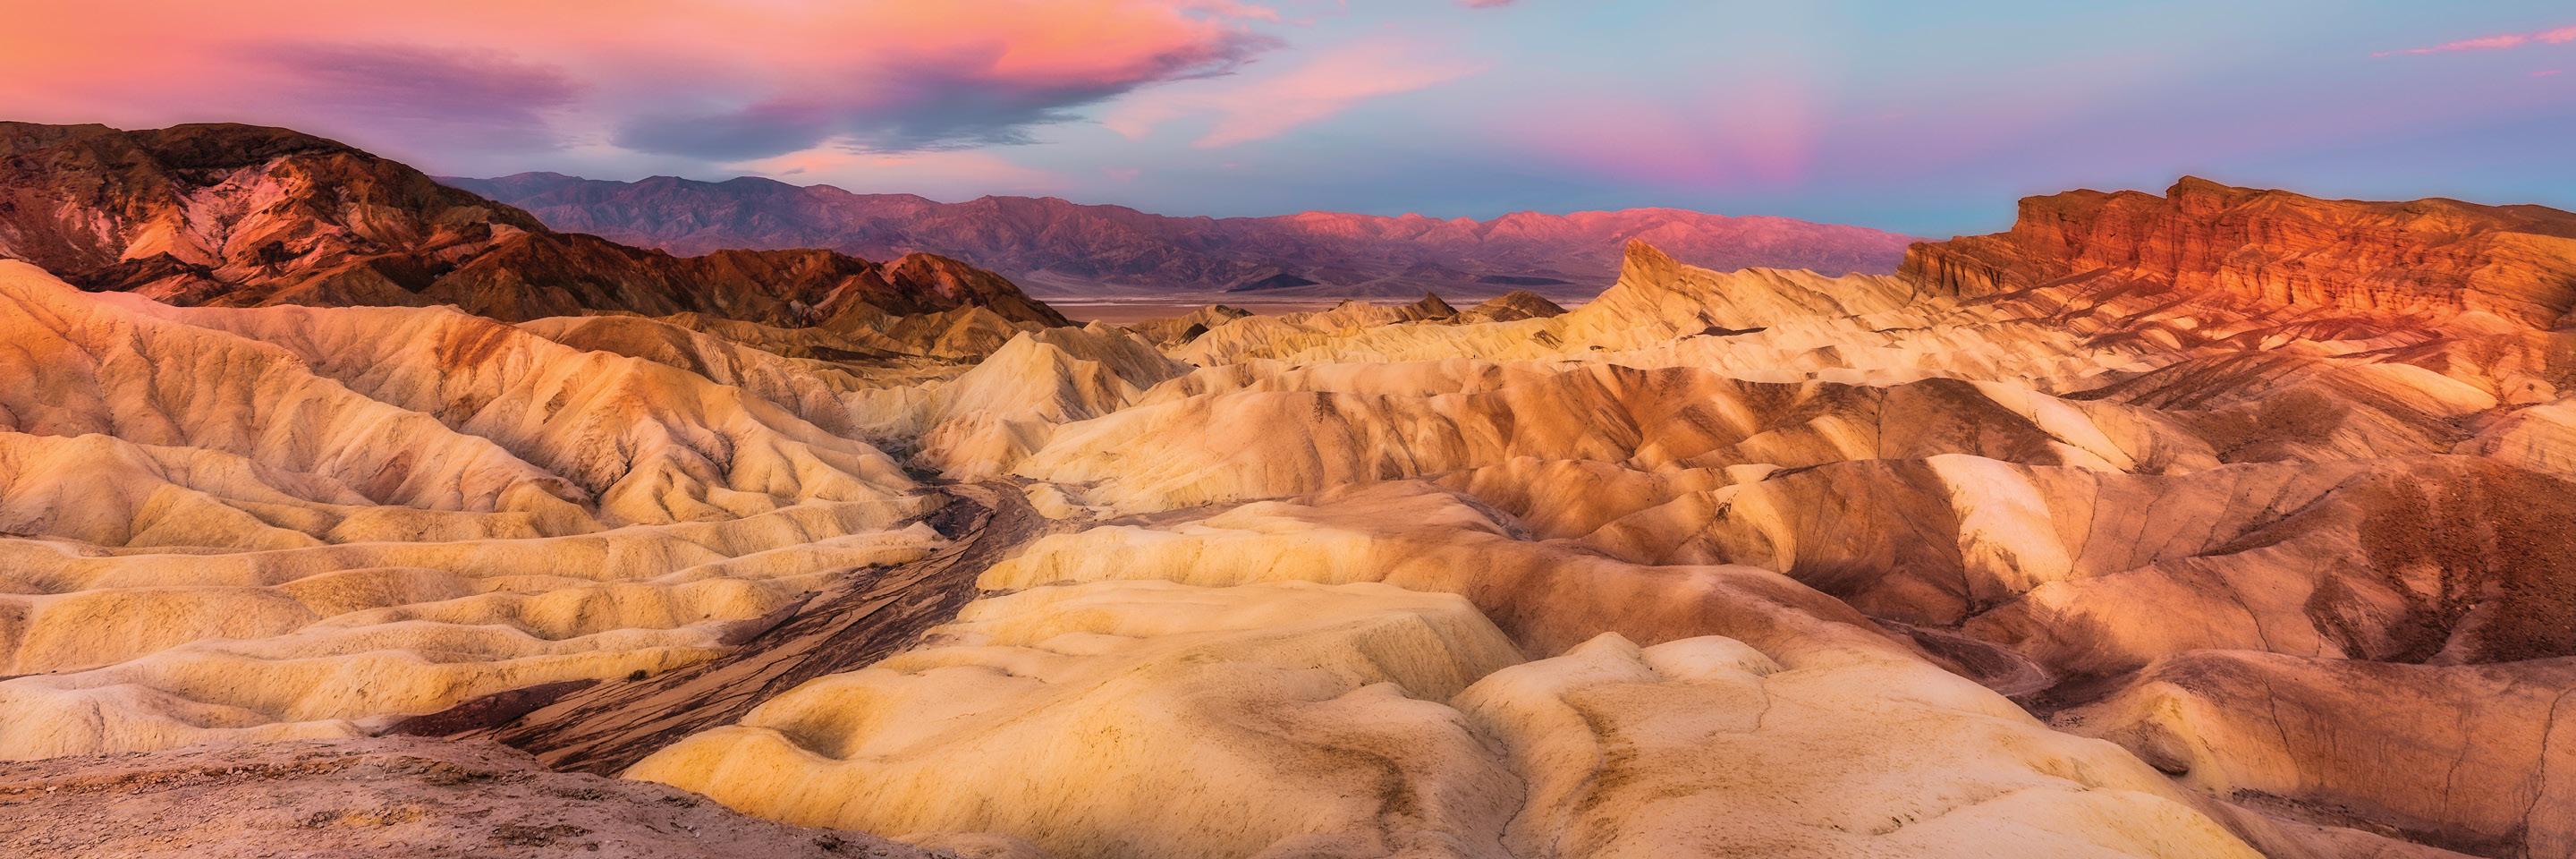 Southern California Charms with Death Valley National Park